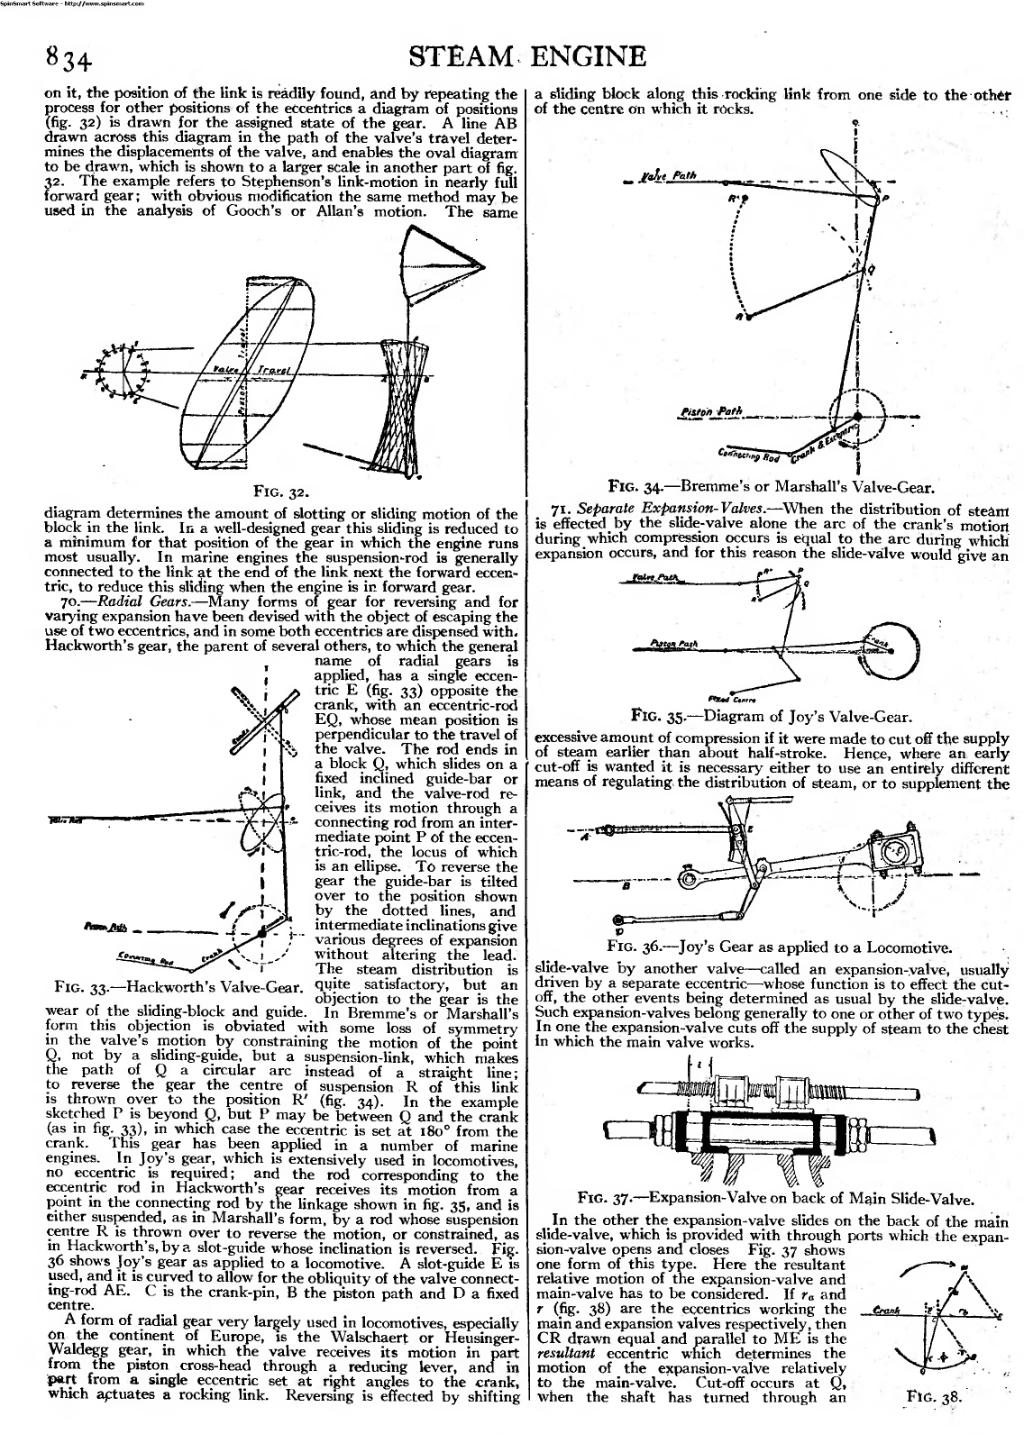 Pageeb1911 Volume 25djvu 856 Wikisource The Free Online Library Expansion Valve Diagram Eccentric Which Determines Motion Of Relatively To Main Cut Off Occurs At Q When Shaft Has Turned Through An